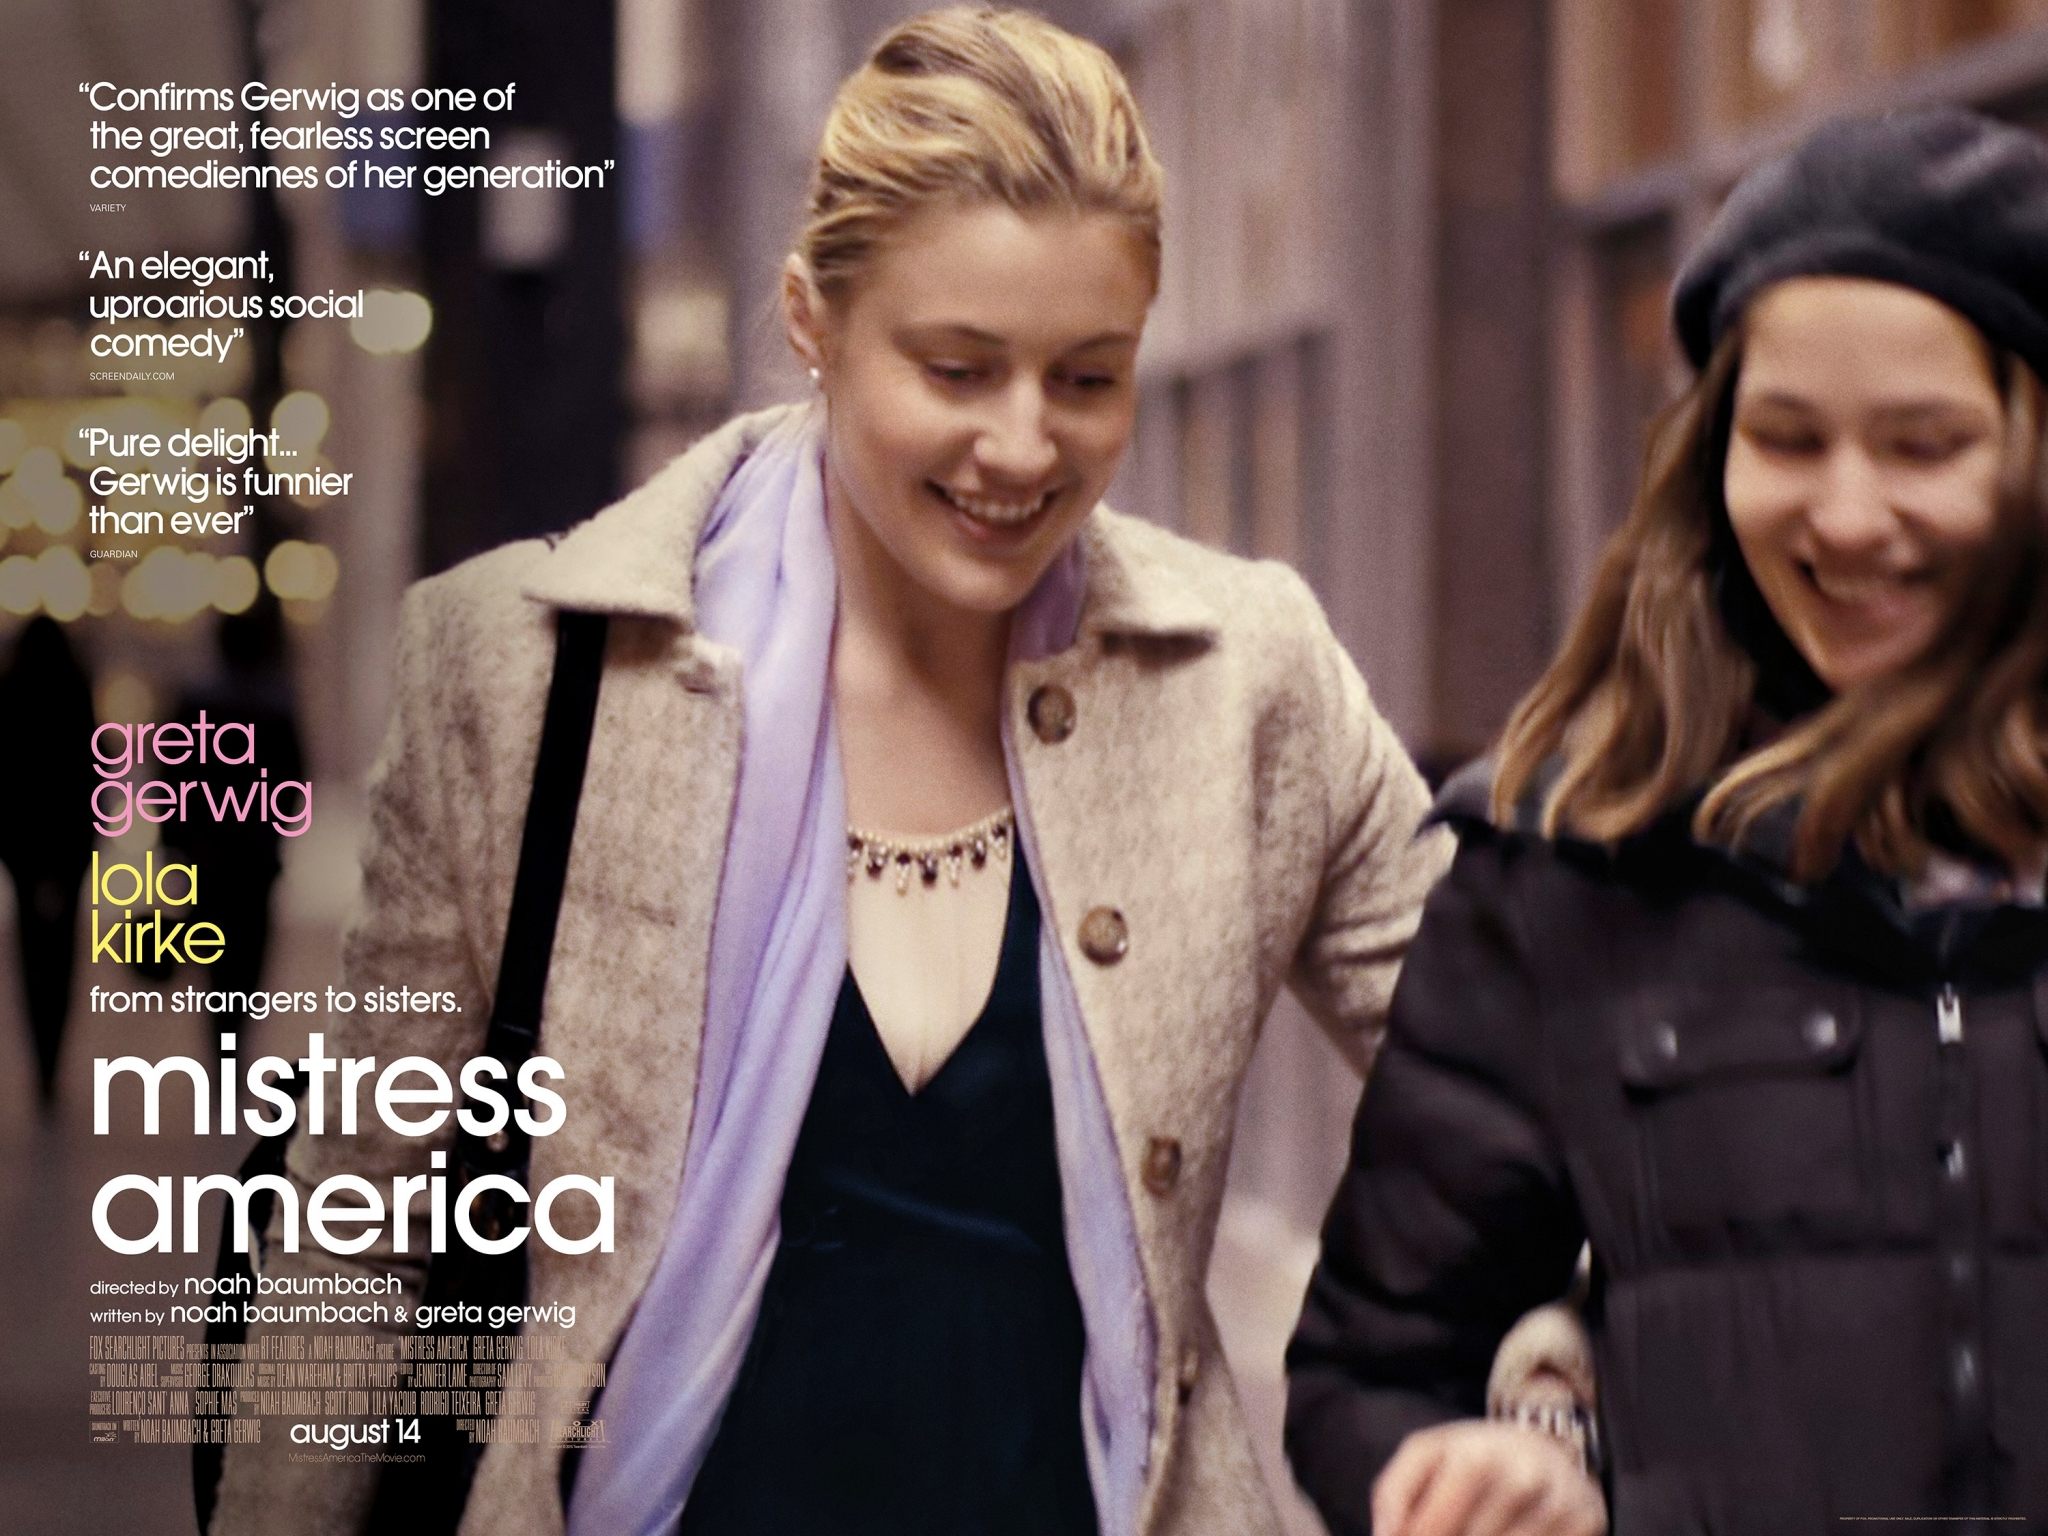 Road to Cinema Talks 'Mistress America' with Noah Baumbach, Greta Gerwig, and Lola Kirke